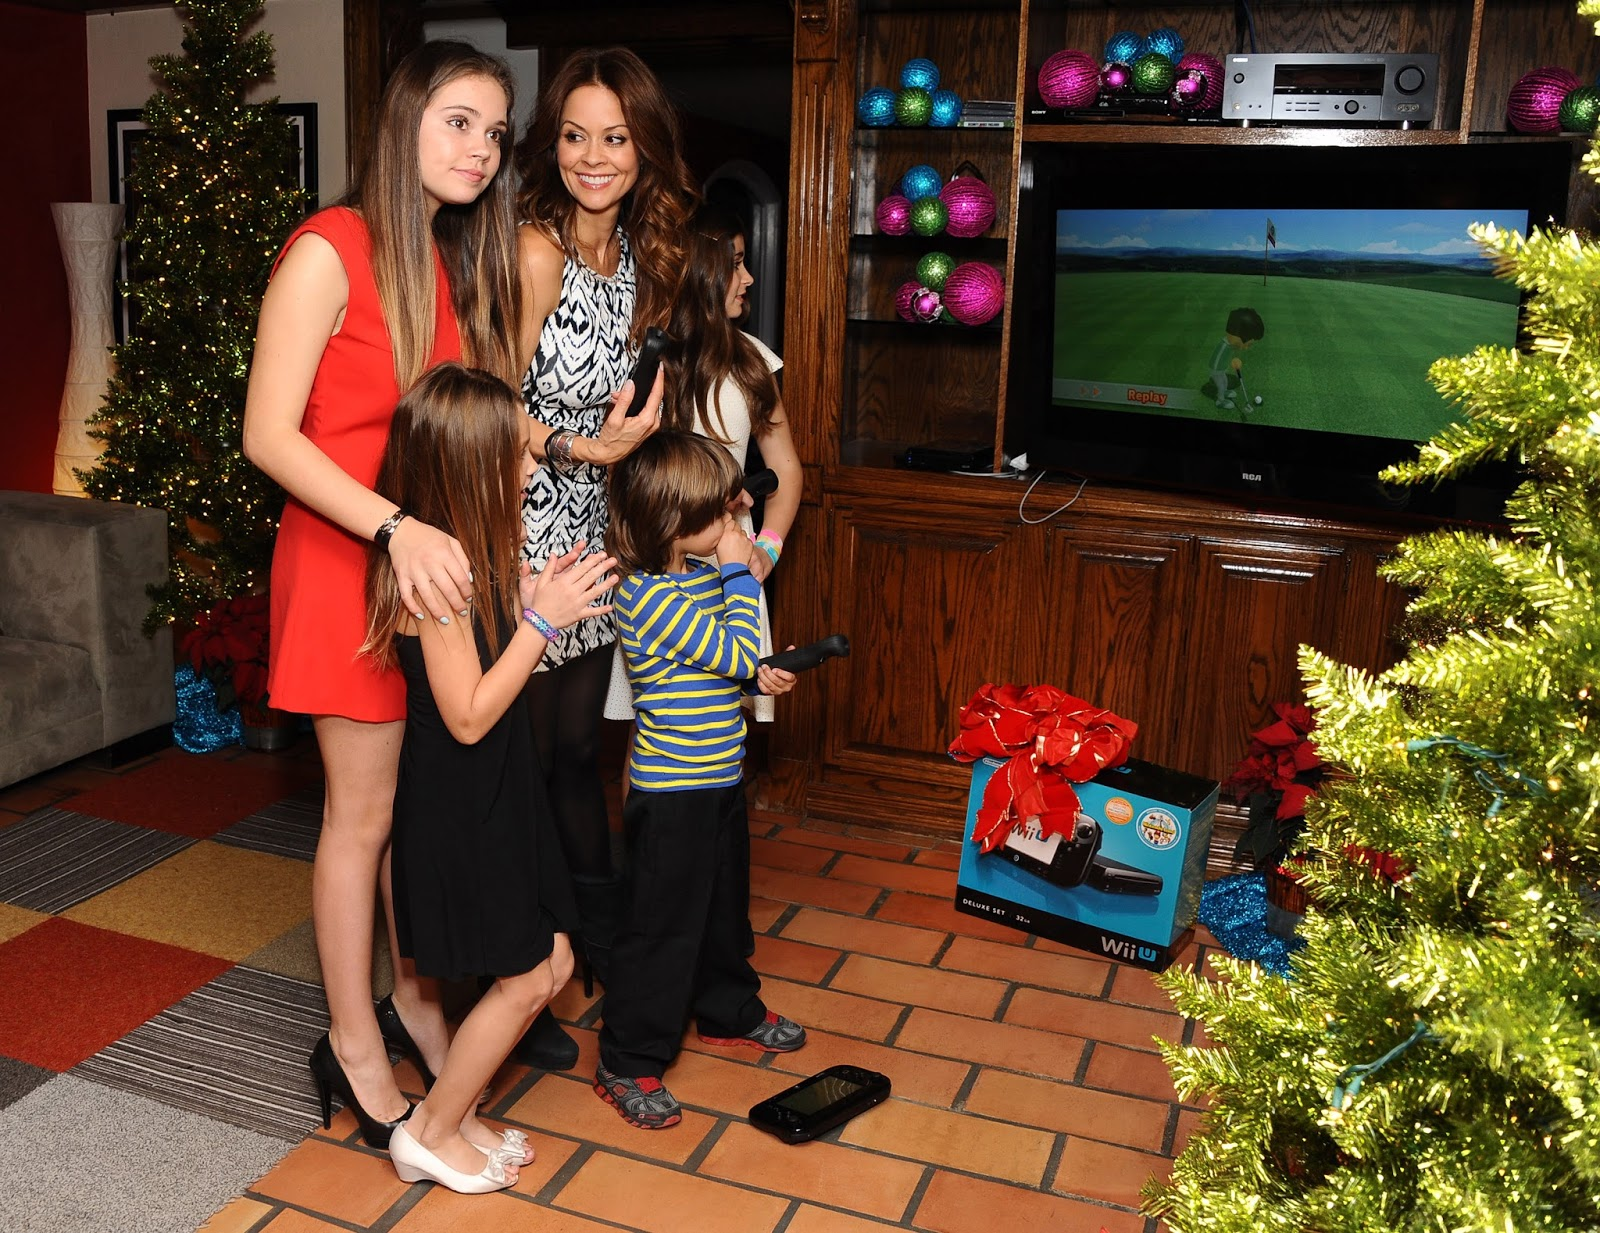 Brooke Burke Charvet Received the Gift of Family with Wii U